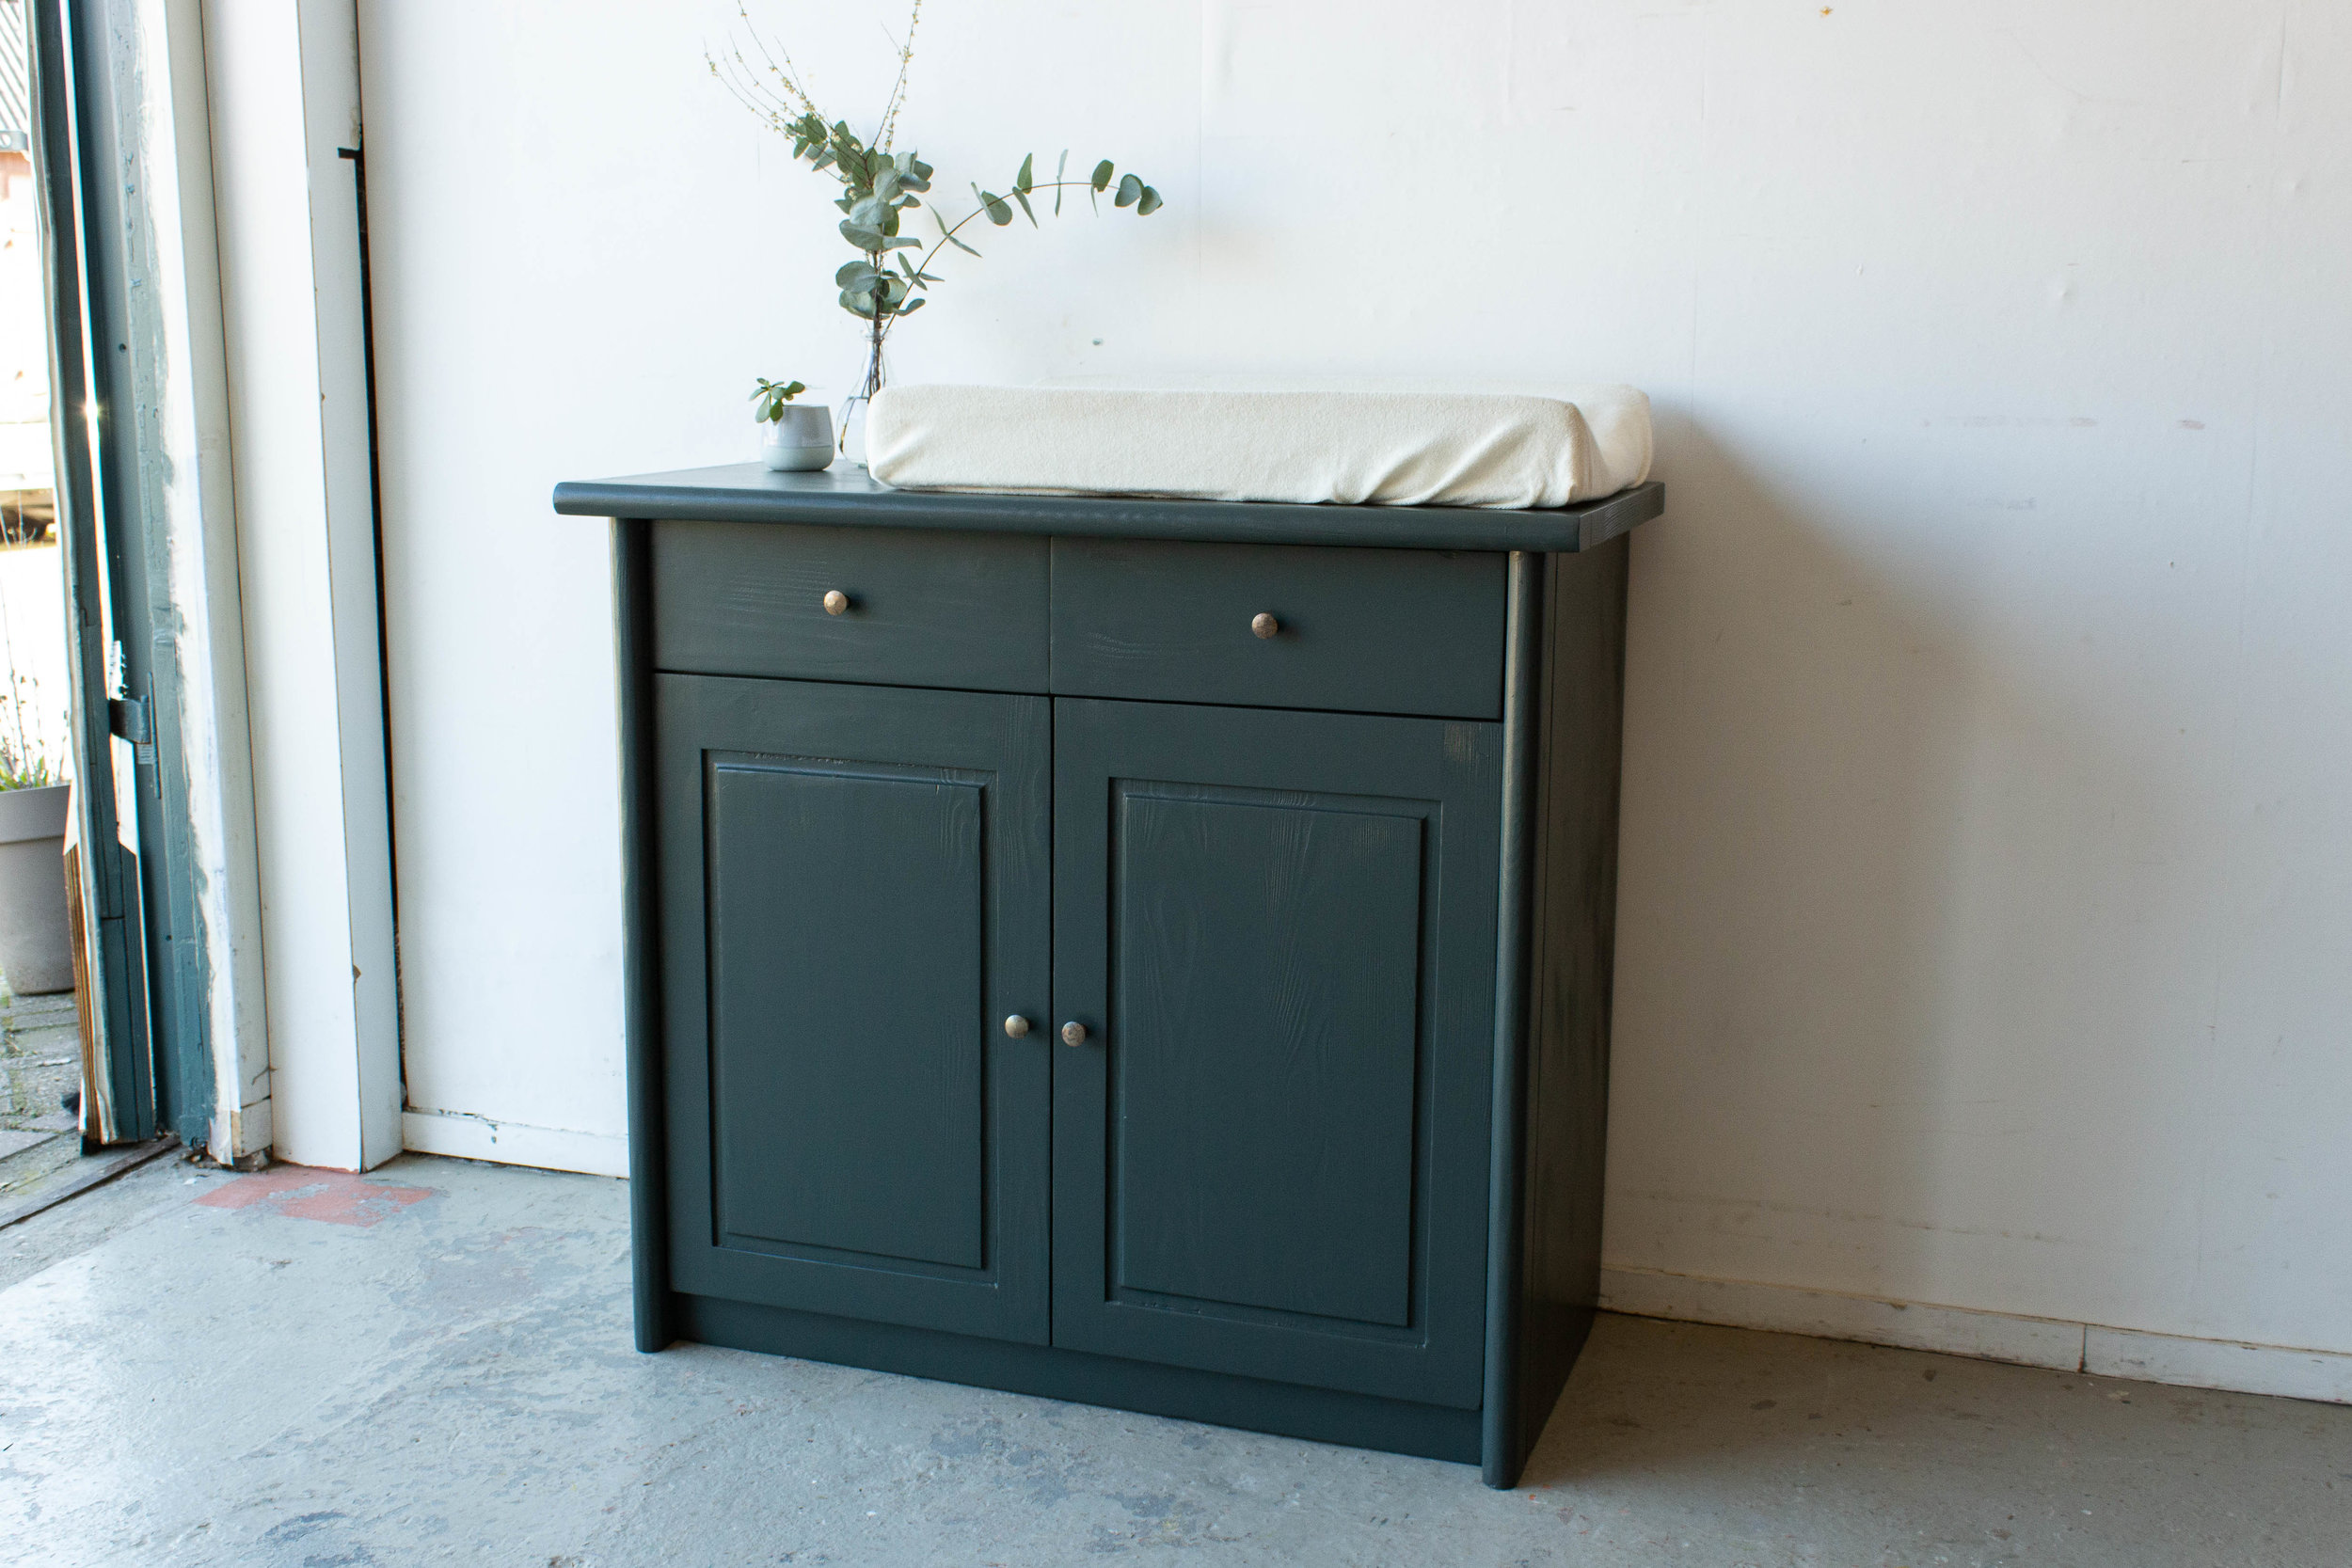 2185 - Woudgroene commode-3.jpg